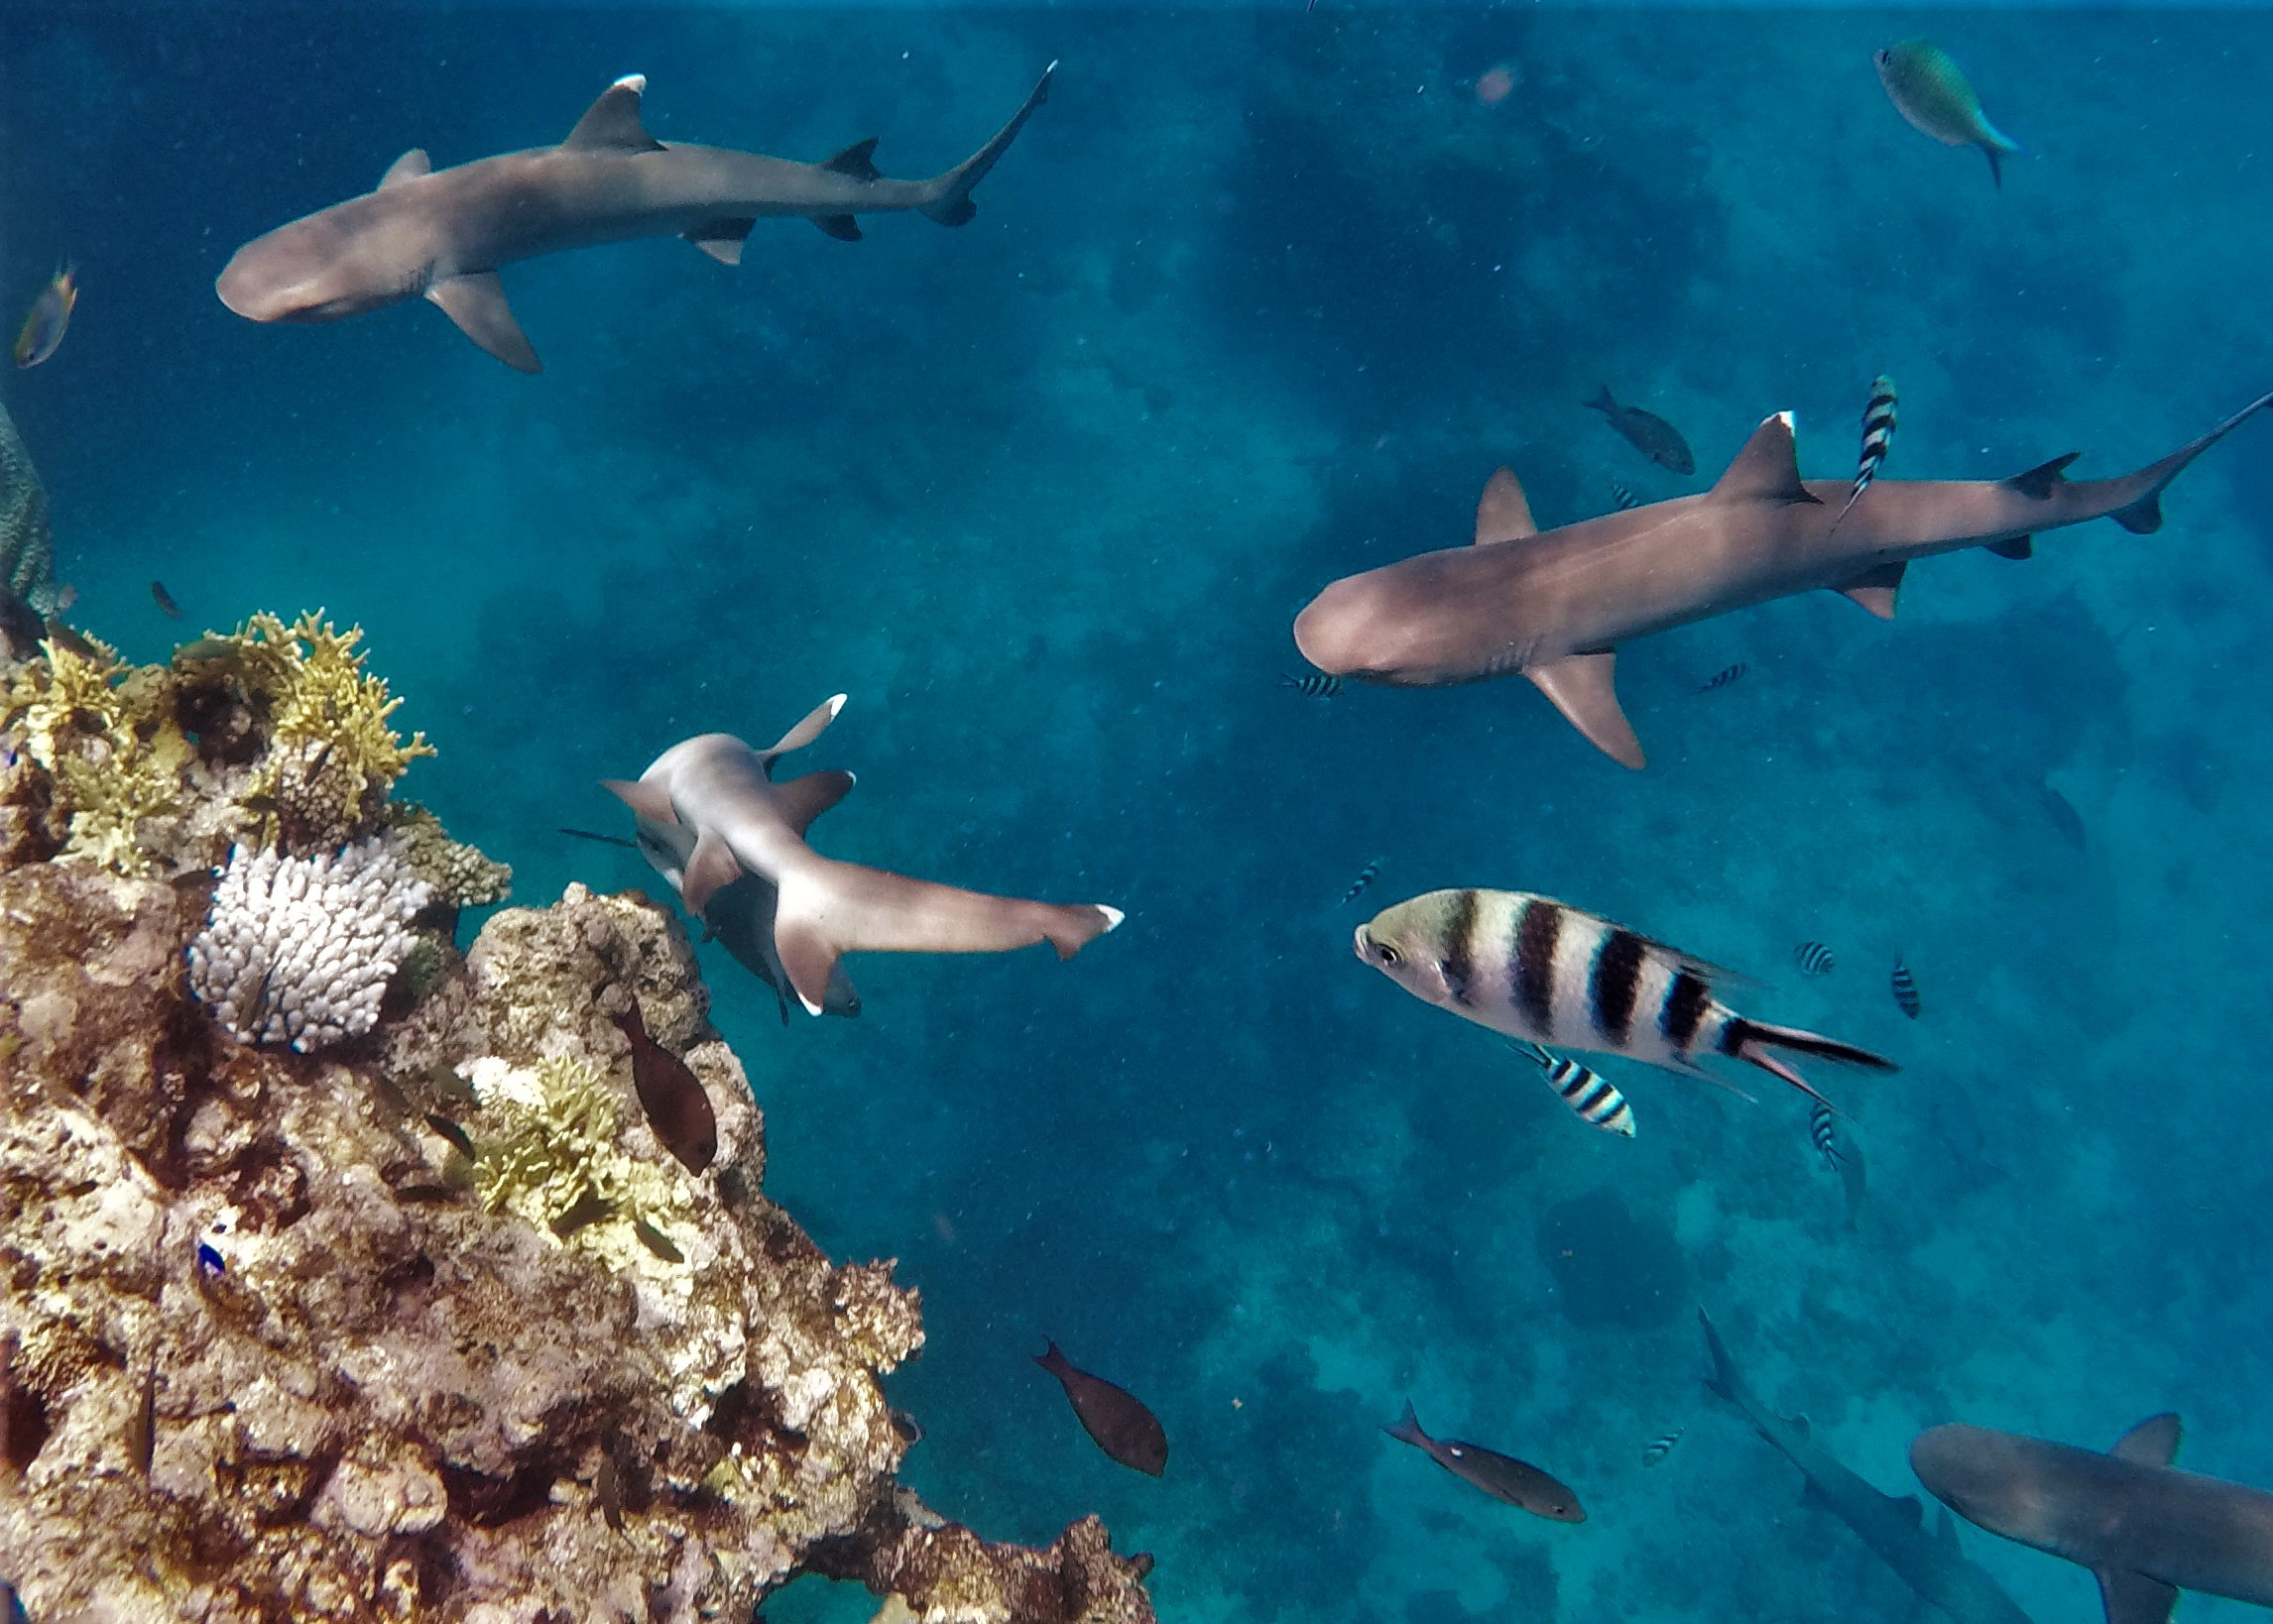 Adrenaline Tourism: Swimming with Sharks in Fiji